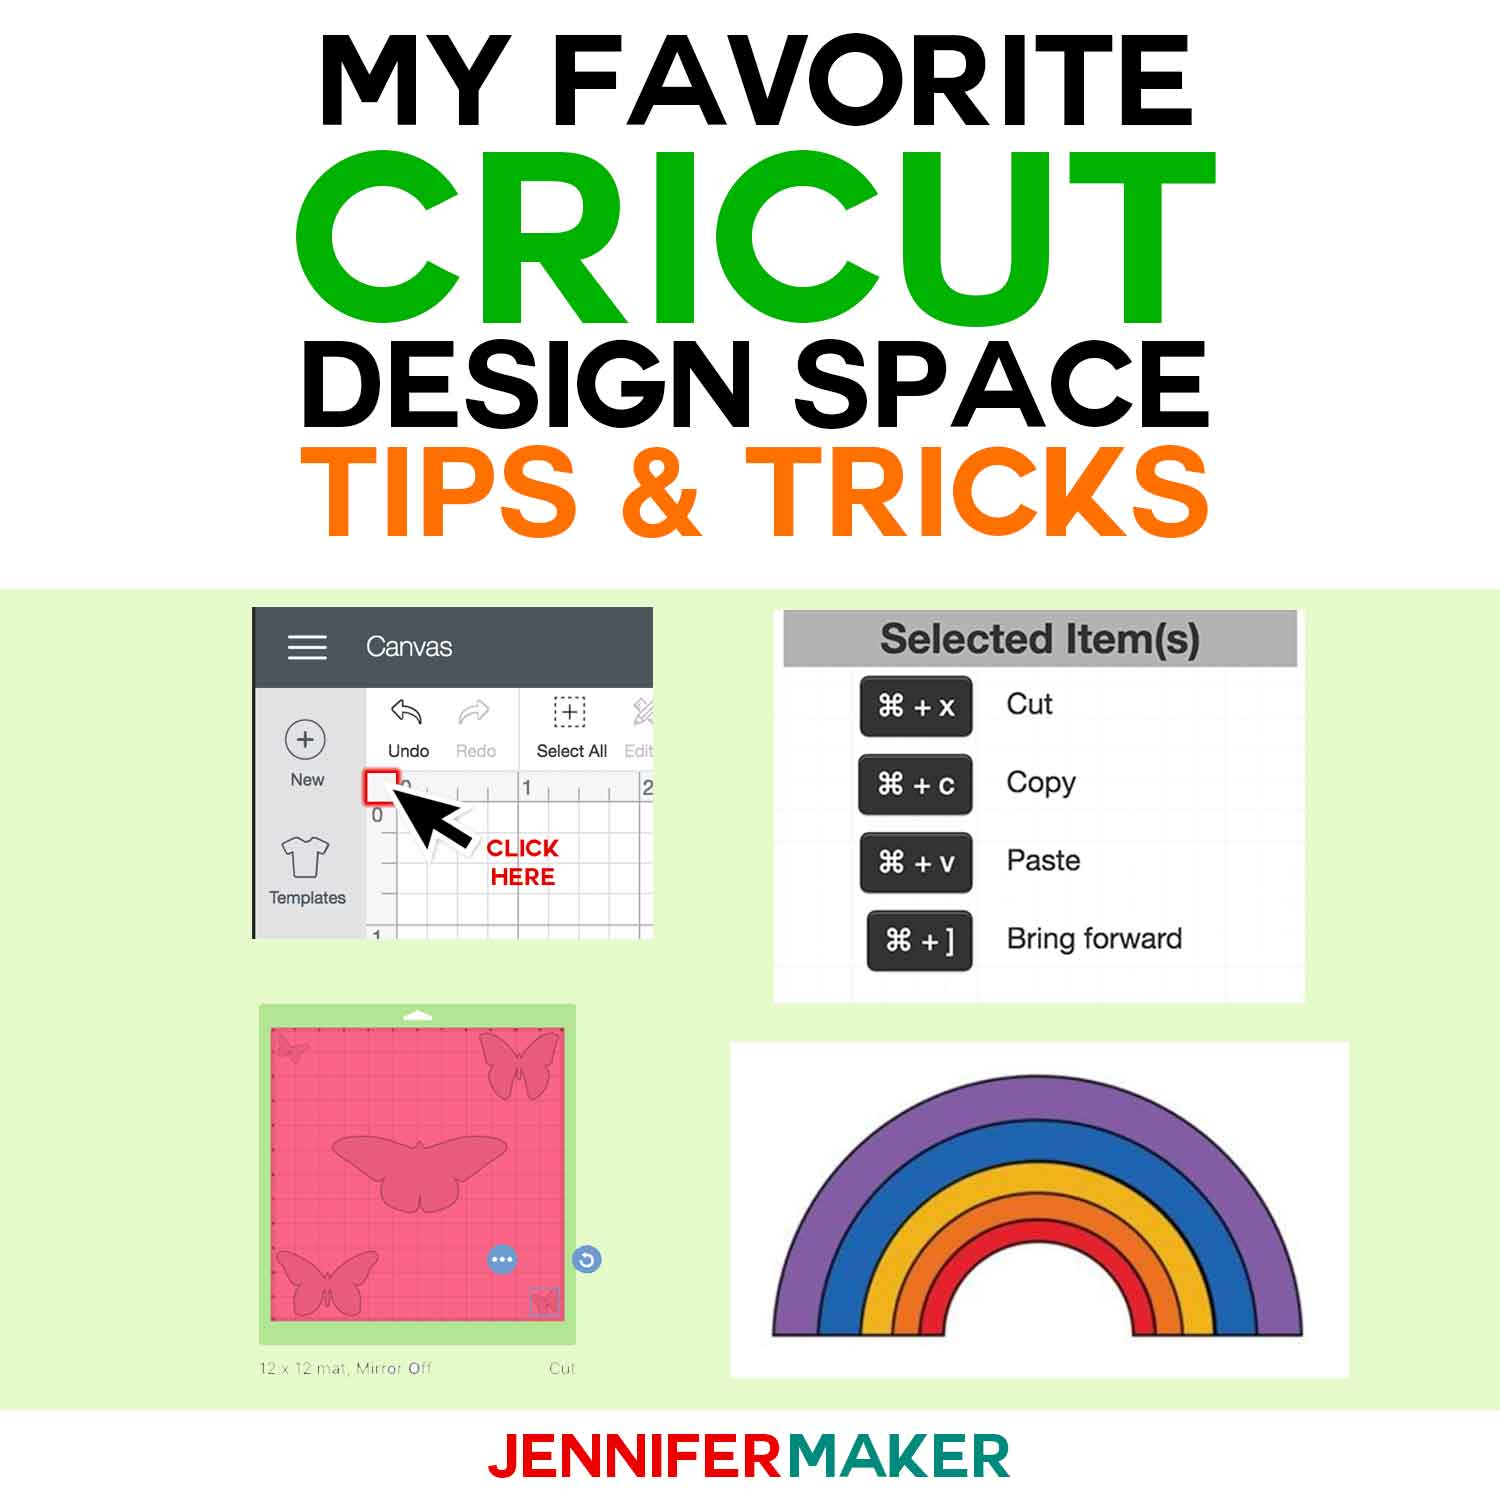 Best Cricut Design Space Tips & Tricks & Tutorials #cricut #cricutexplore #cricutmaker #tips #crafts